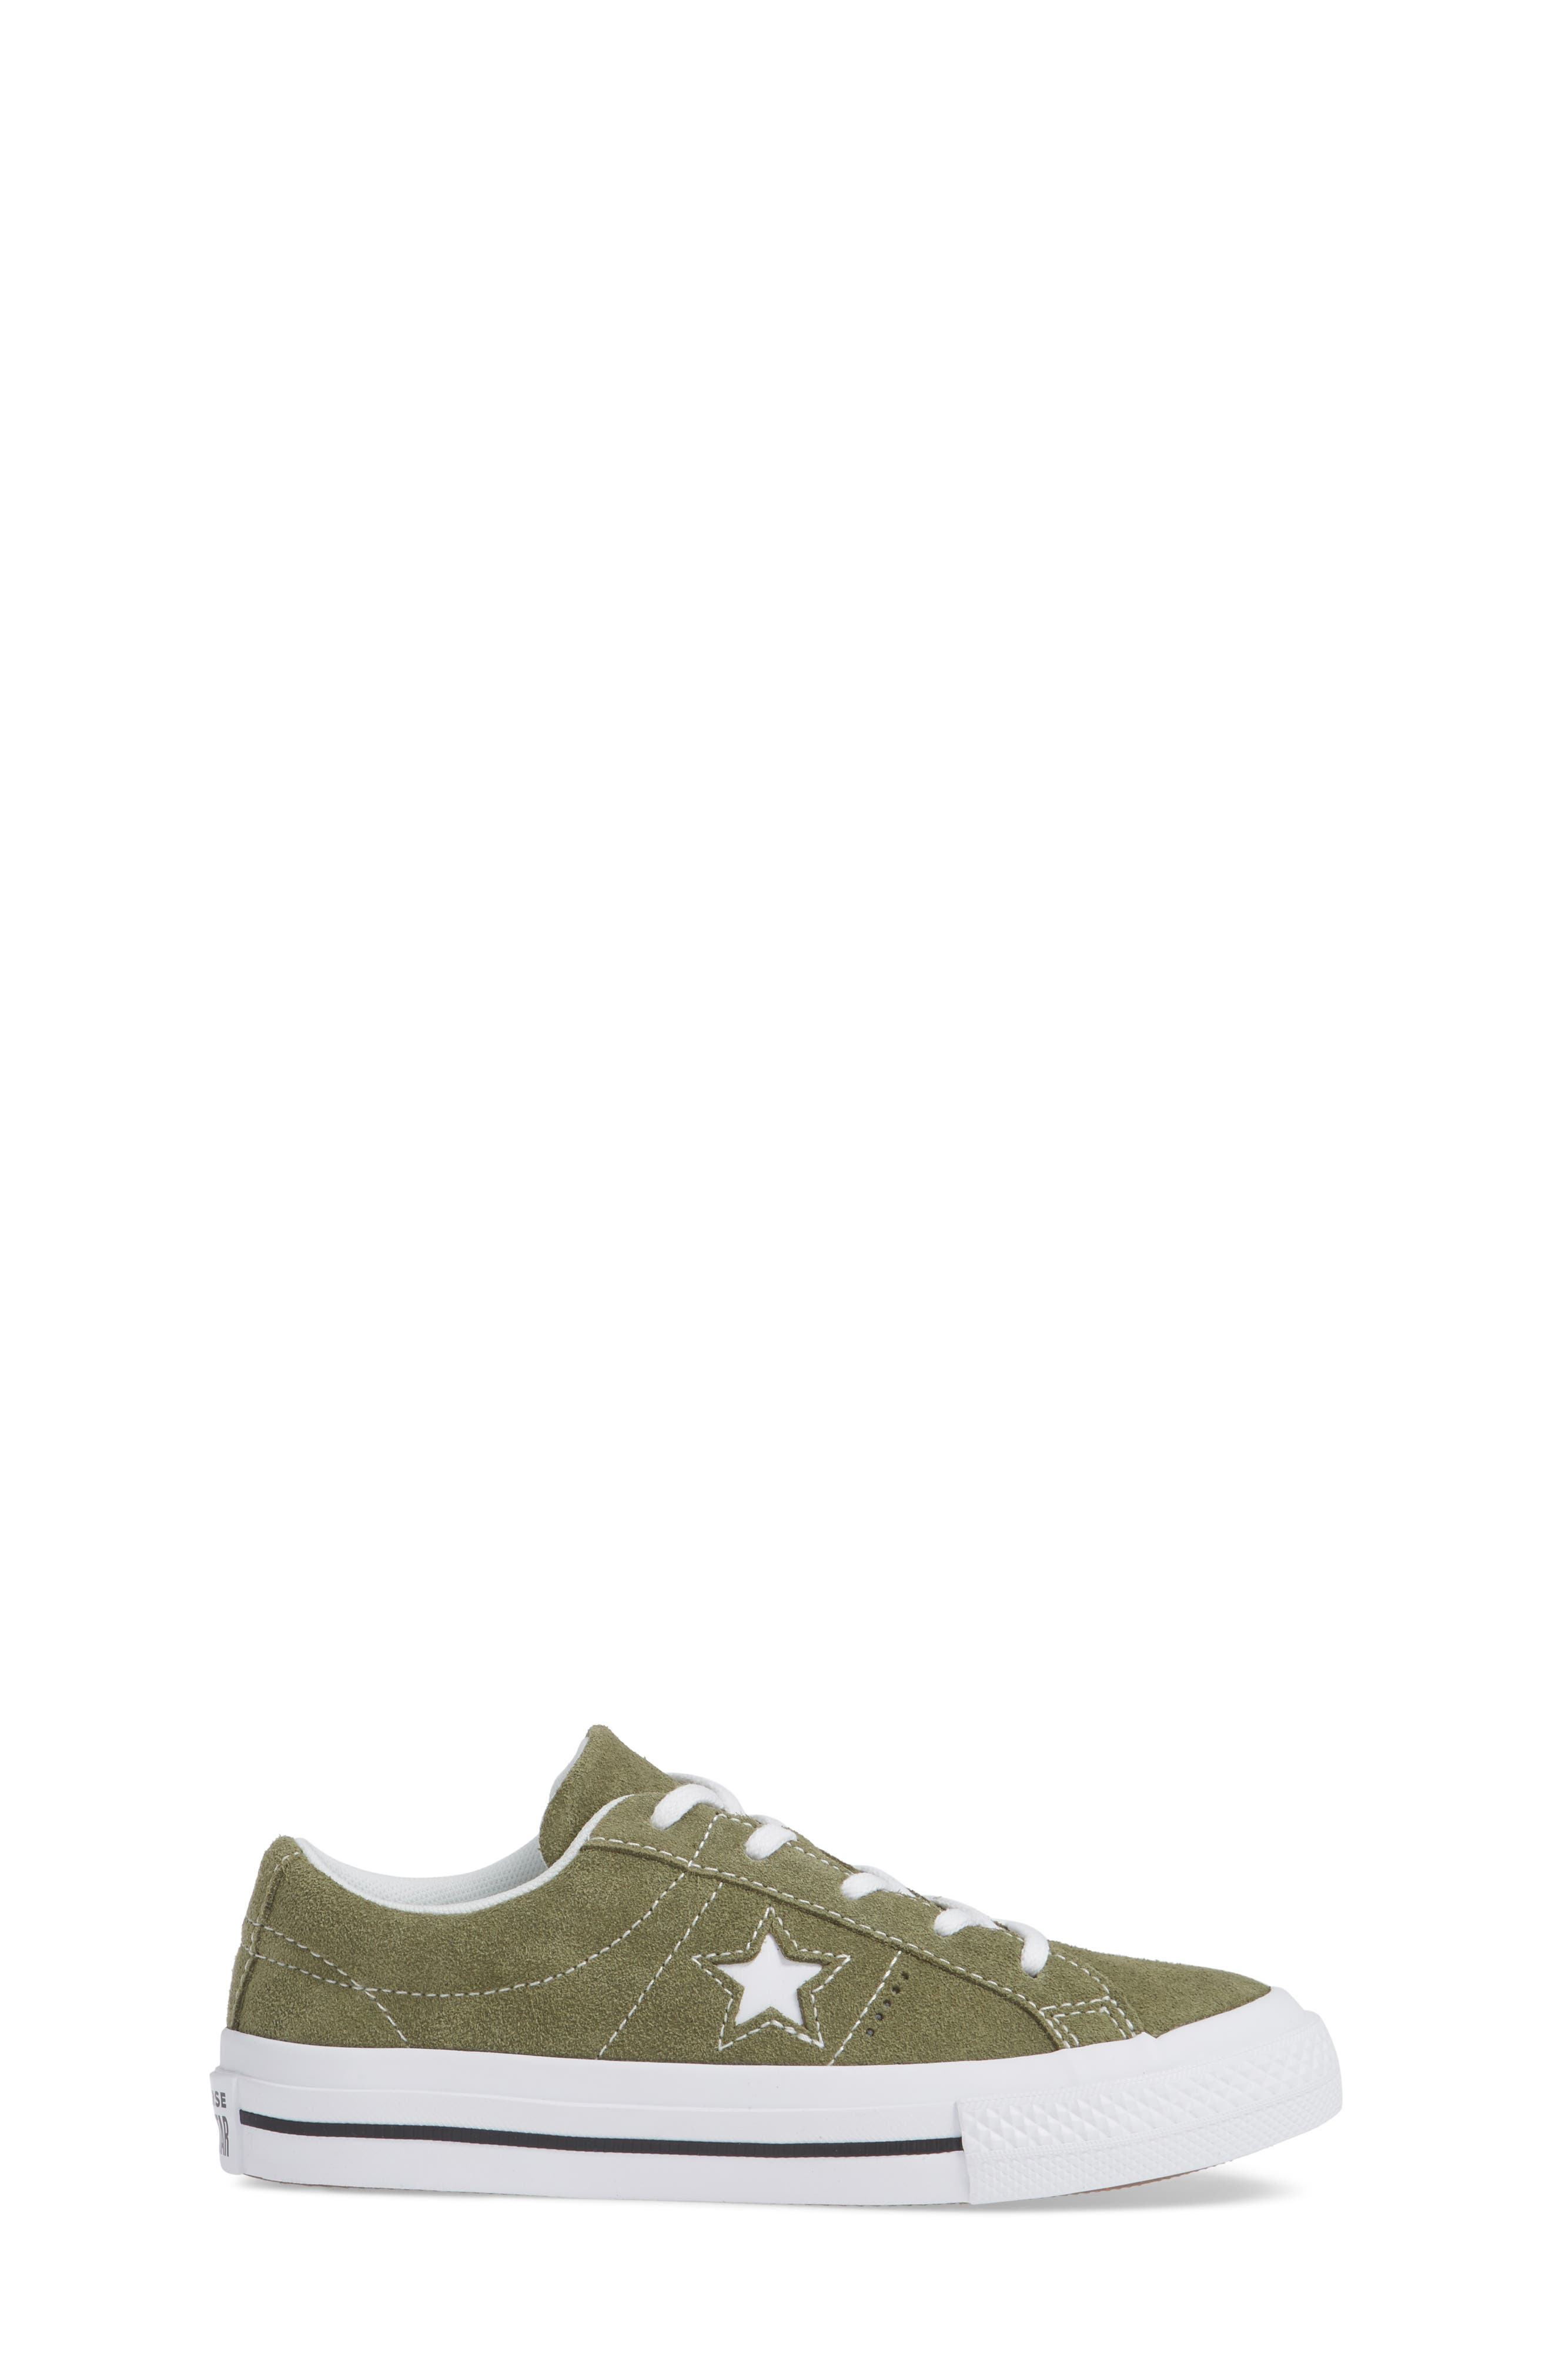 One Star Vintage Suede Low Top Sneaker,                             Alternate thumbnail 3, color,                             322